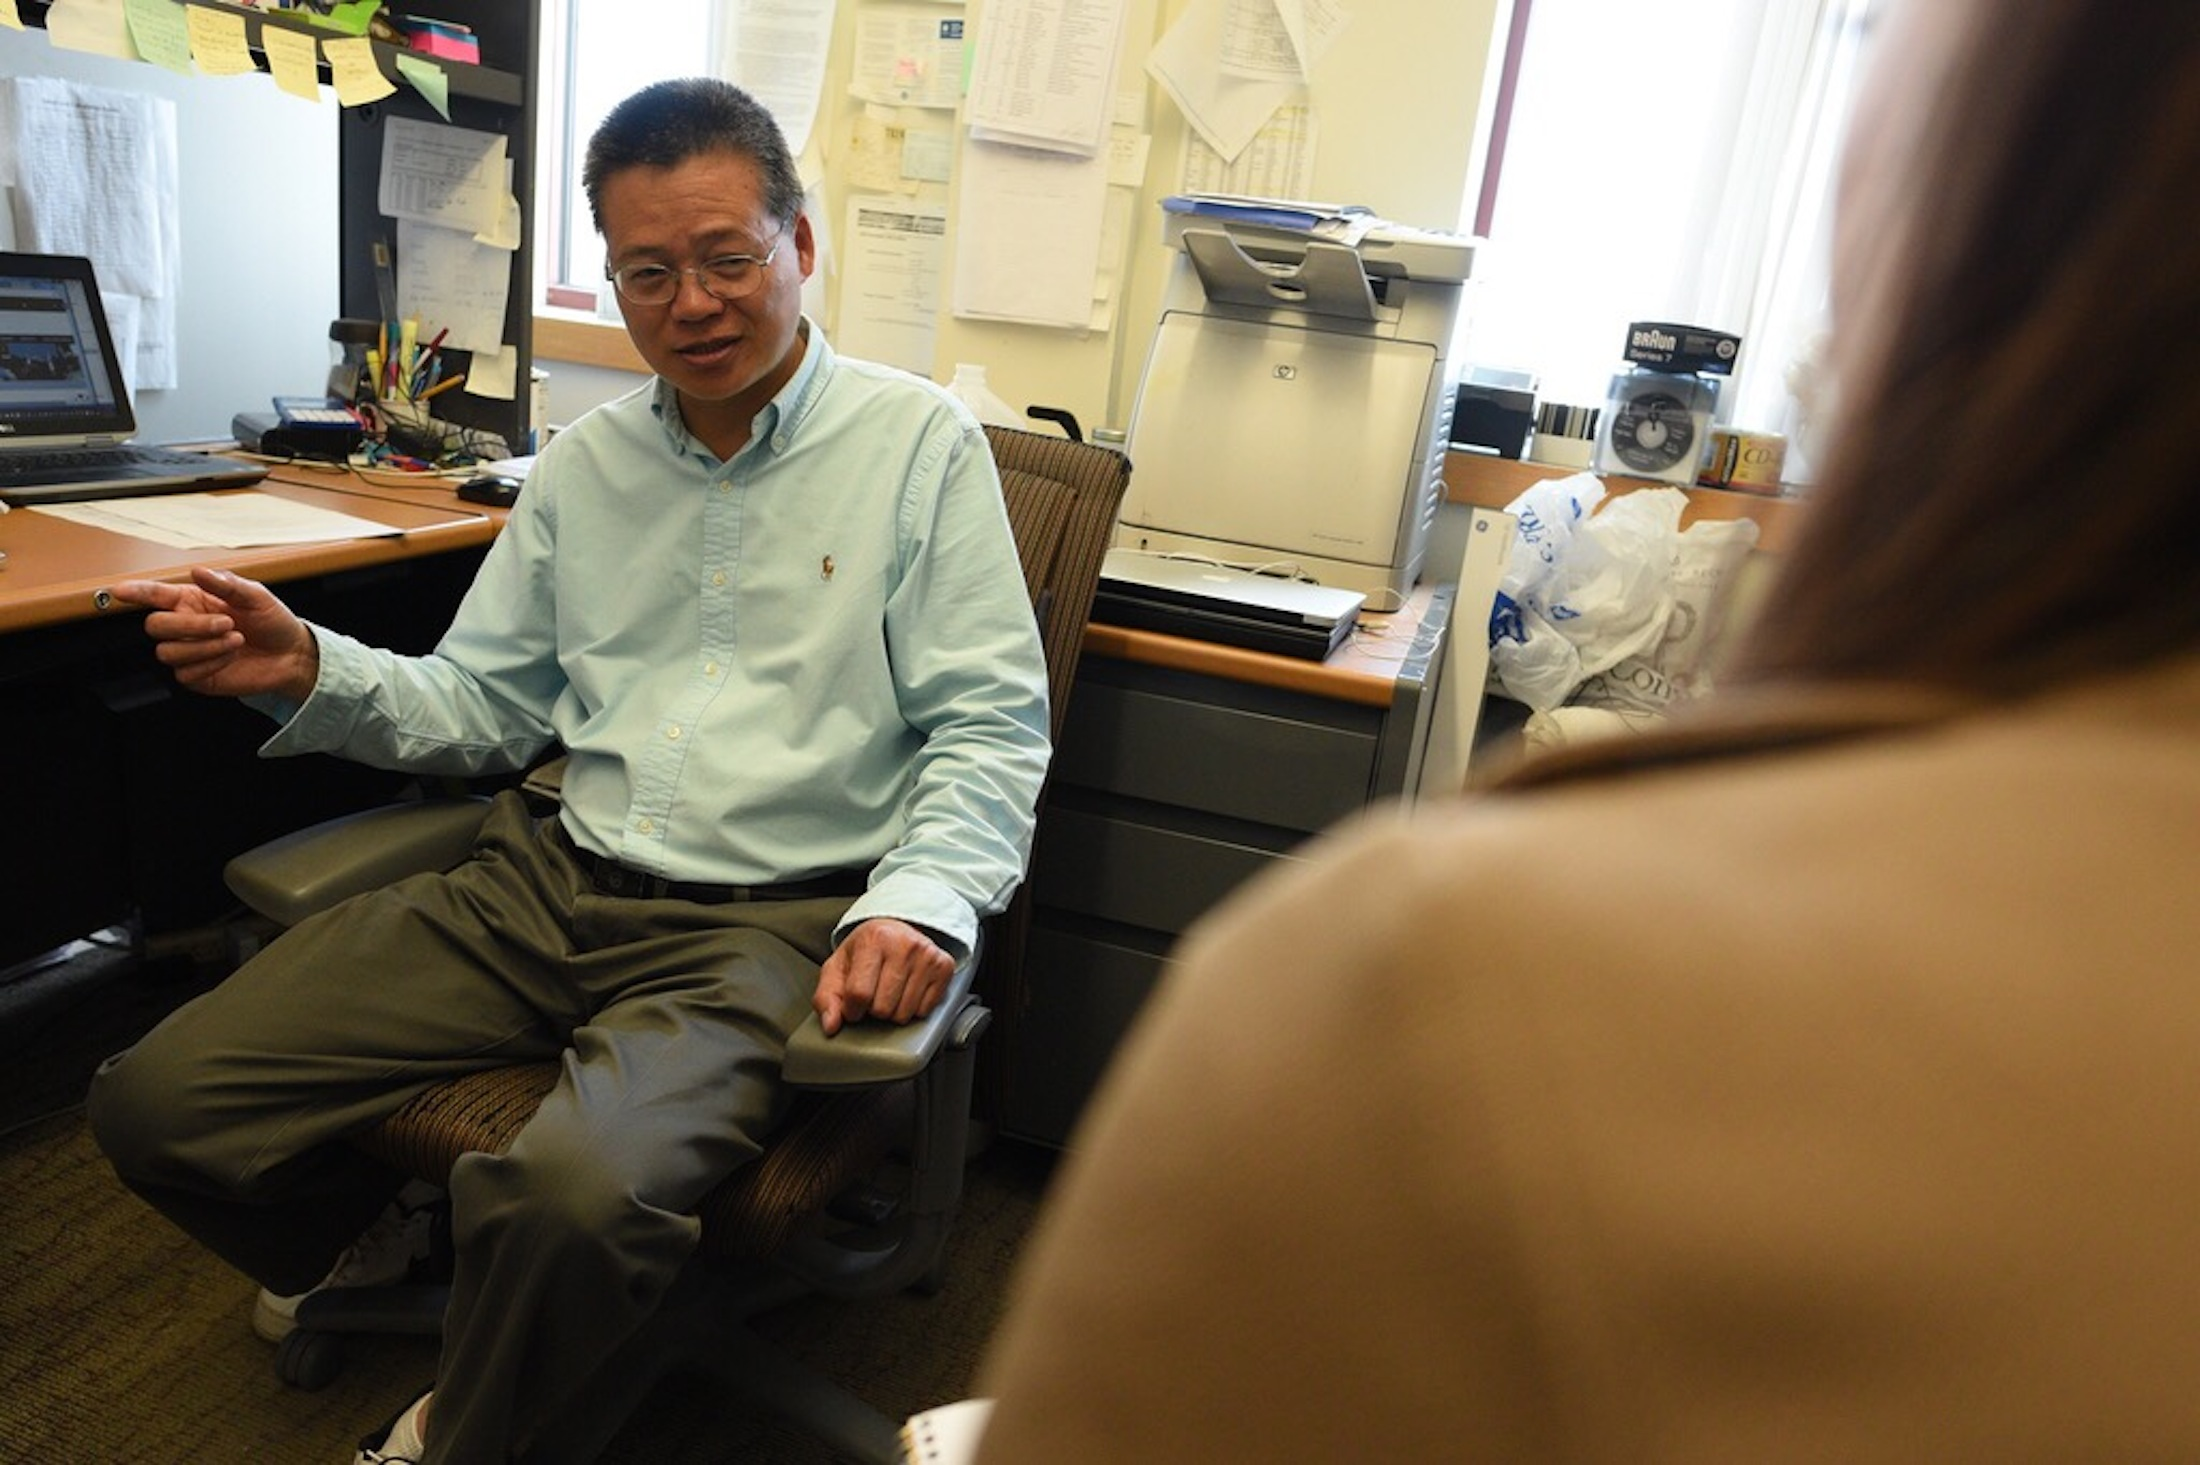 Laijun Lai, Associate Research Professor in the Department of Allied Health Sciences at the University of Connecticut, talks about his latest research about cancer to a Daily Campus writer on March 29th.(Zhelun Lang/The Daily Campus)